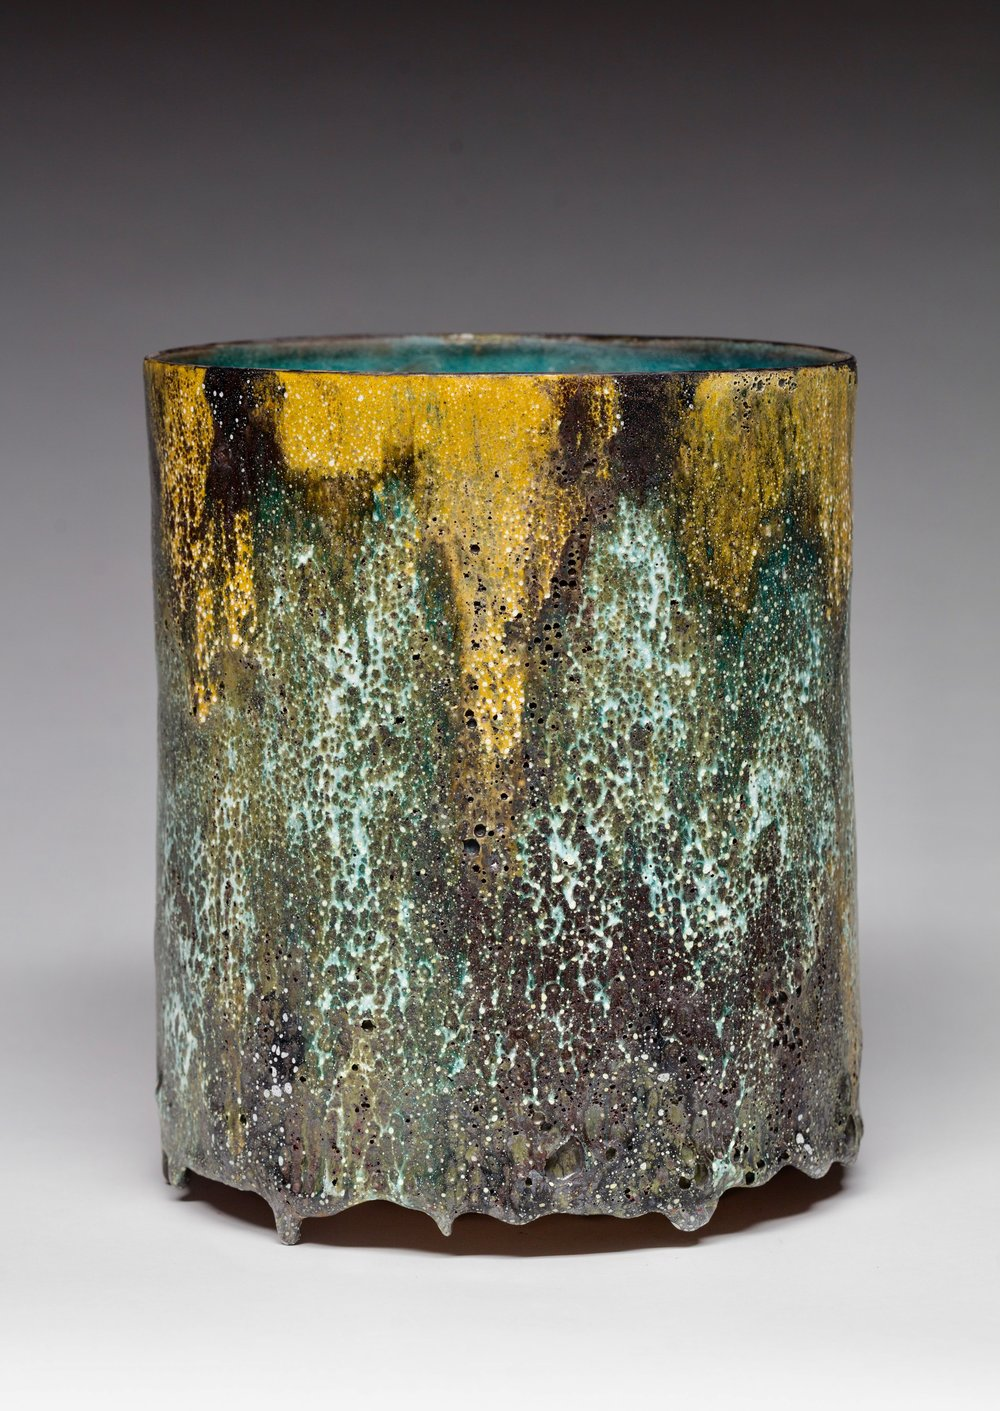 12 -  Pictorial Vessel , 2016   Ceramic, crater glaze - Signed and dated H. 26,7 x D. 22,9 cm H. 10.5 x D. 9 in. Unique  JK#1235